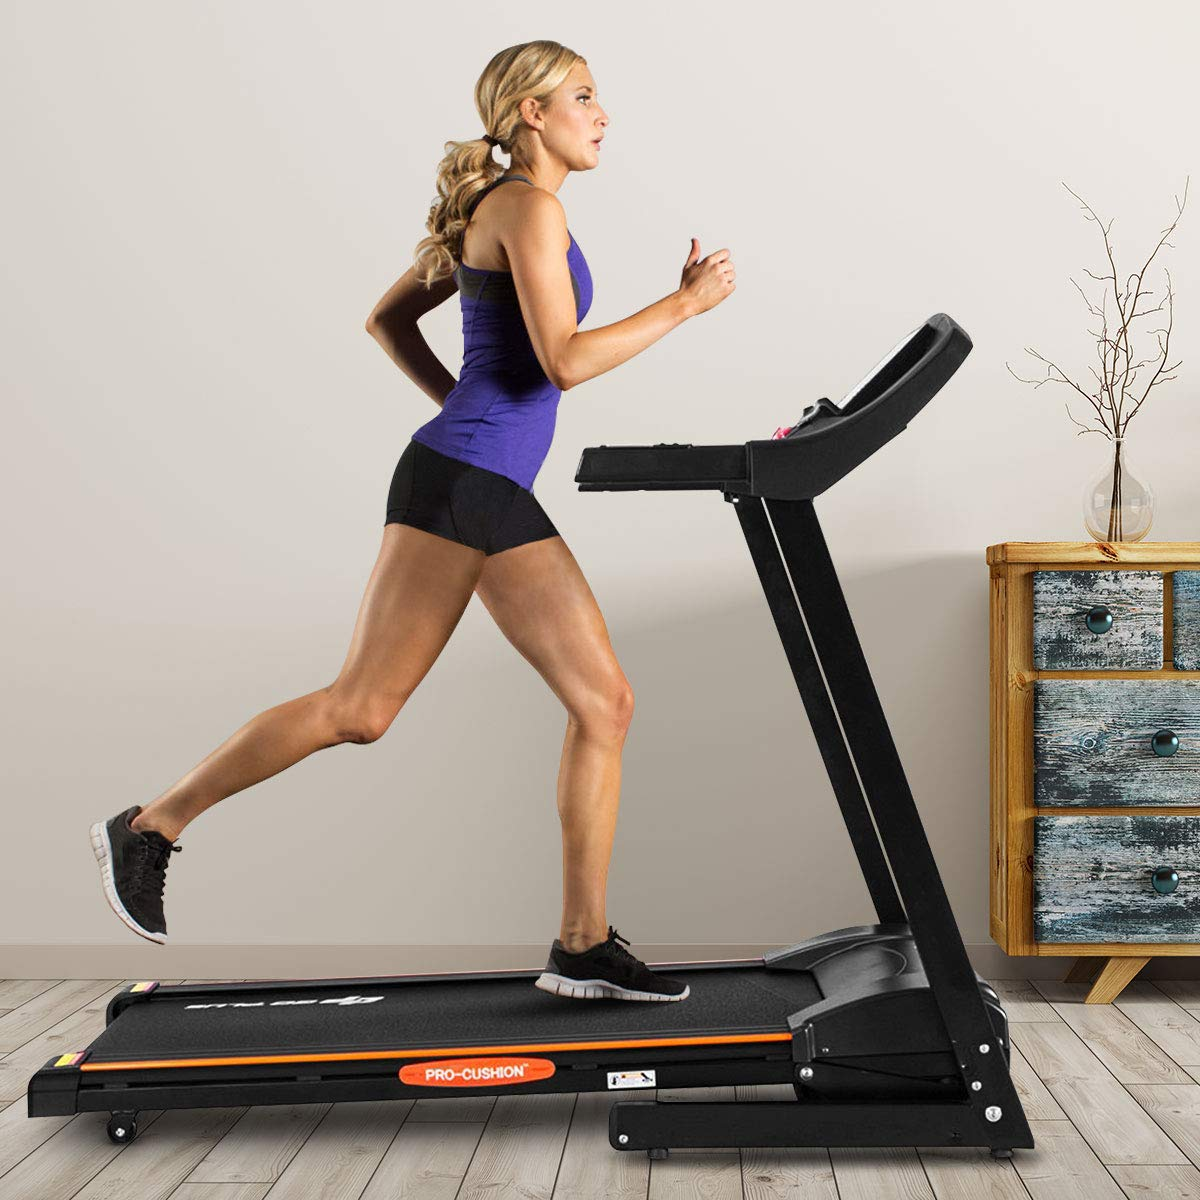 Goplus 2.5HP Electric Automatic Incline Treadmill, App Control and Large LCD Display, Foldable Jogging Walking Running Machine for Home Use